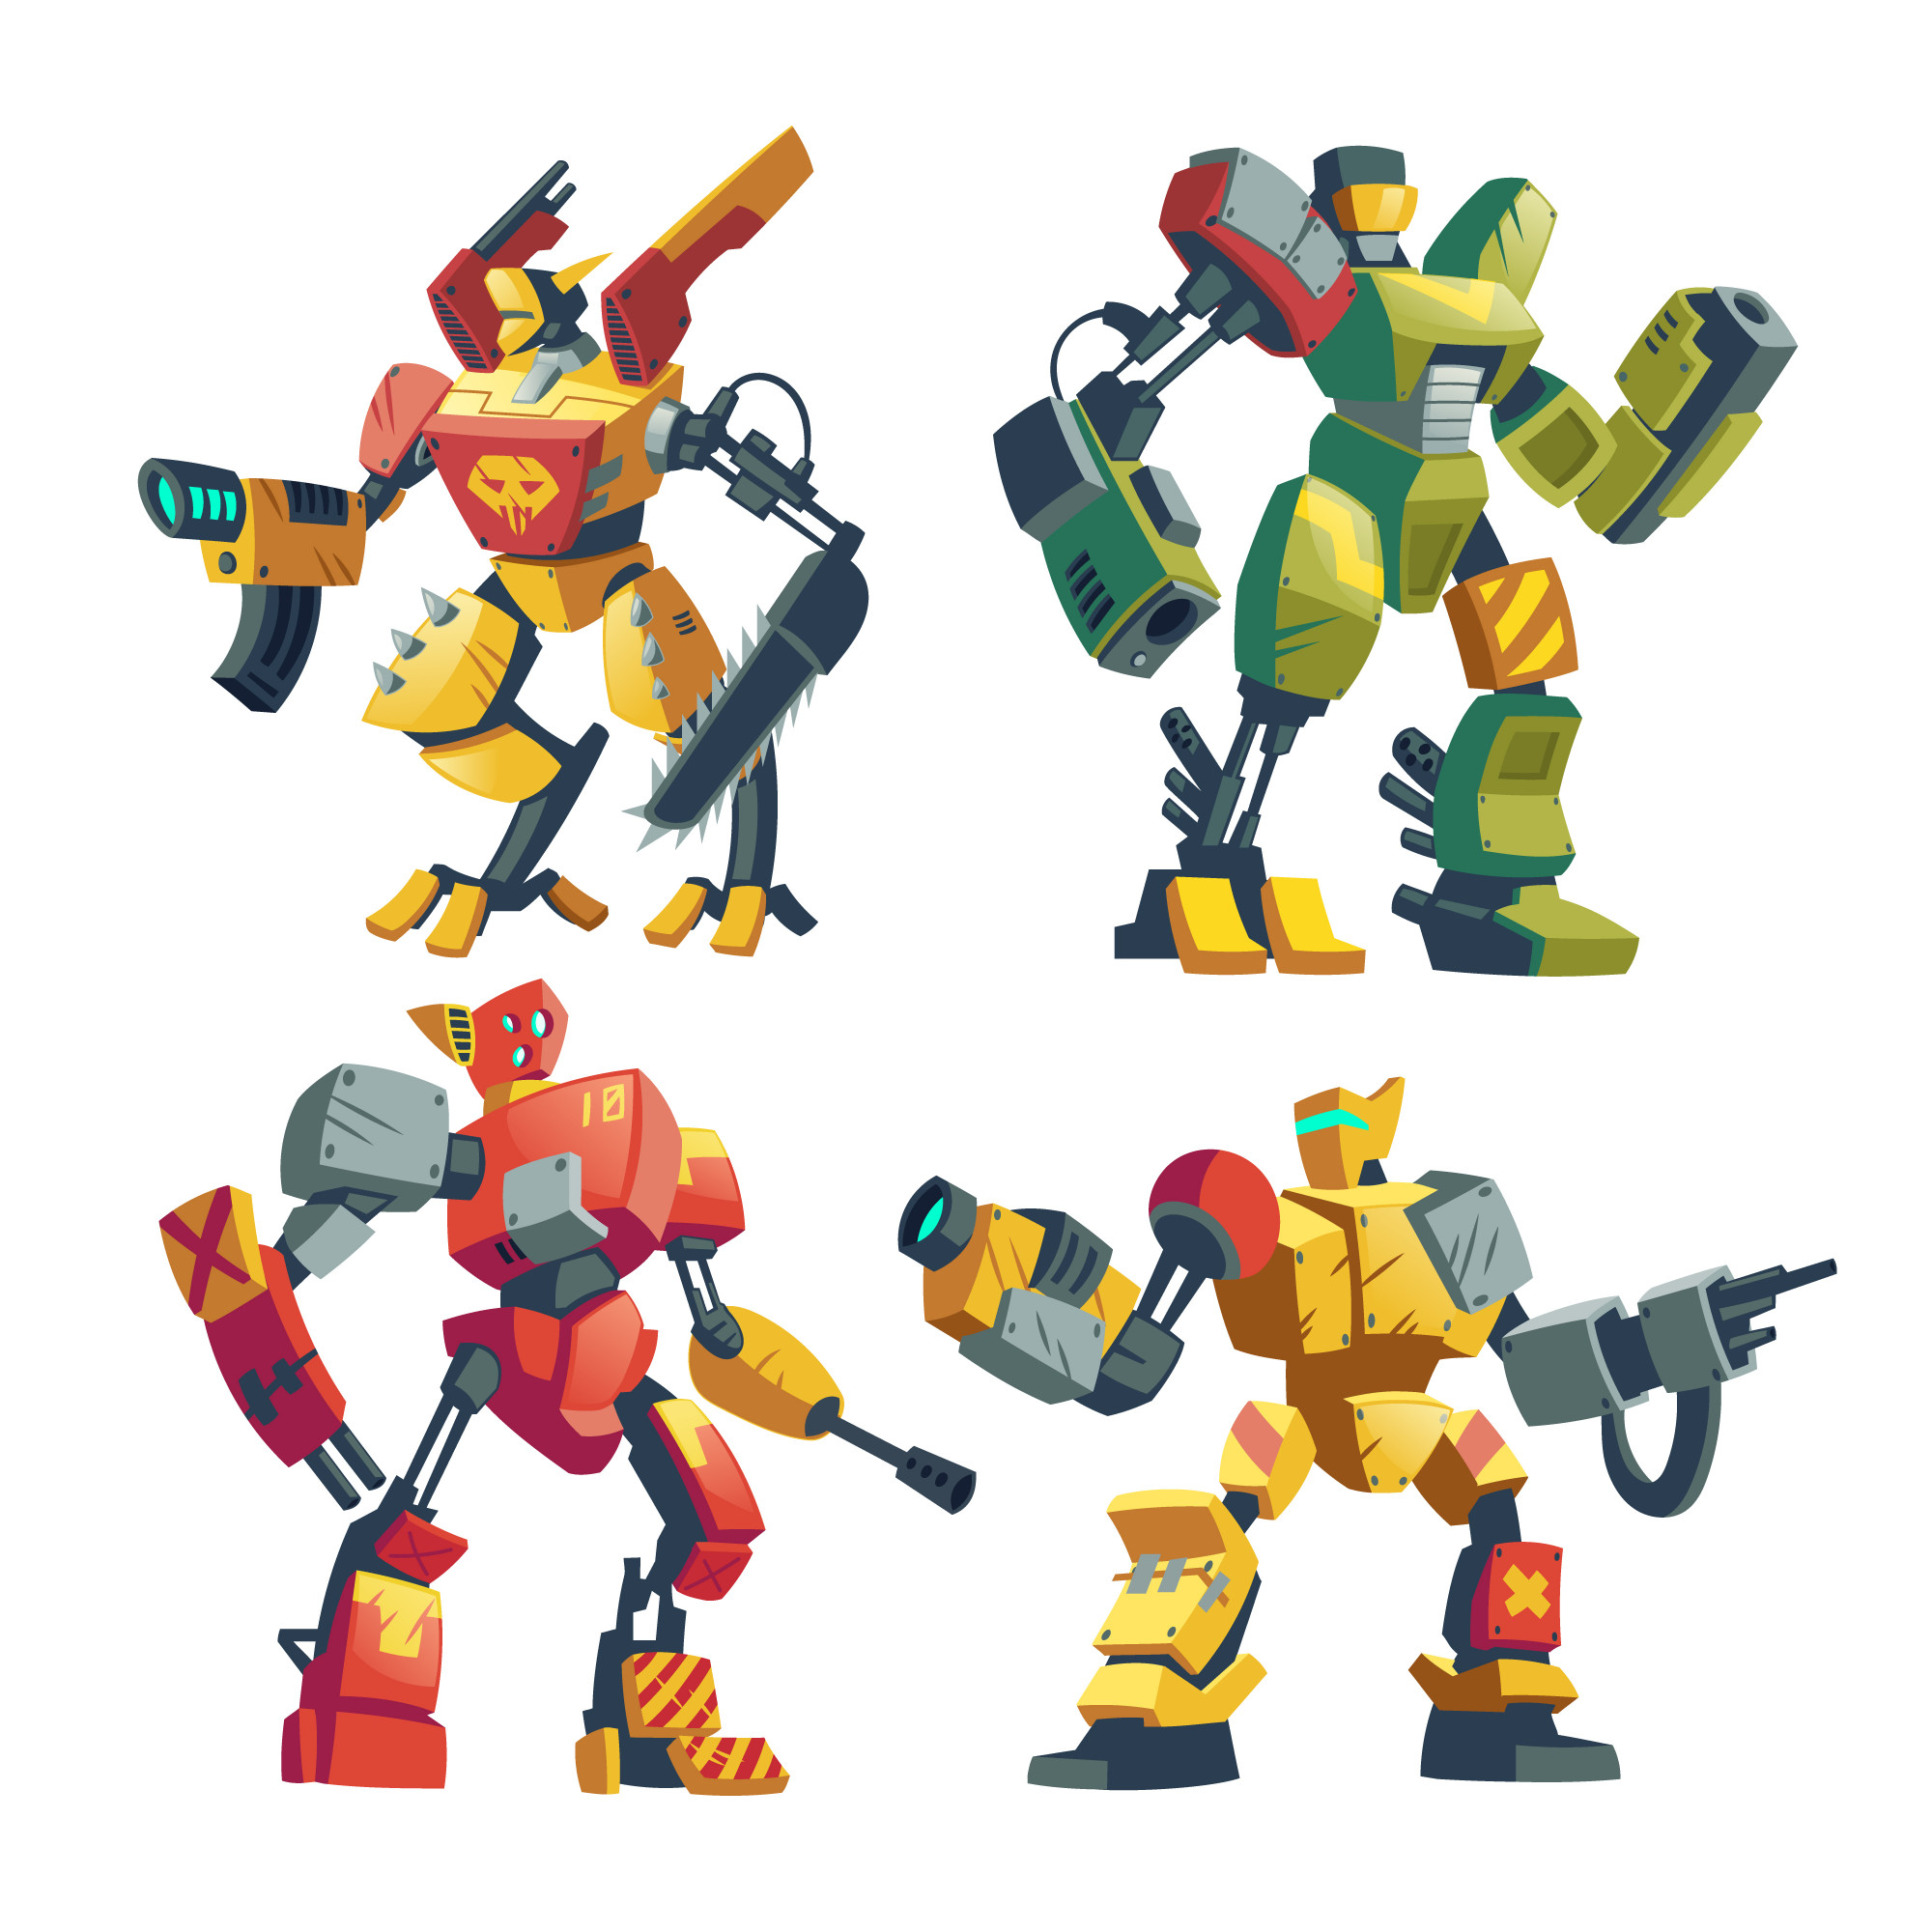 Cartoon combat robots. Battle androids with artificial intelligence in protective armor